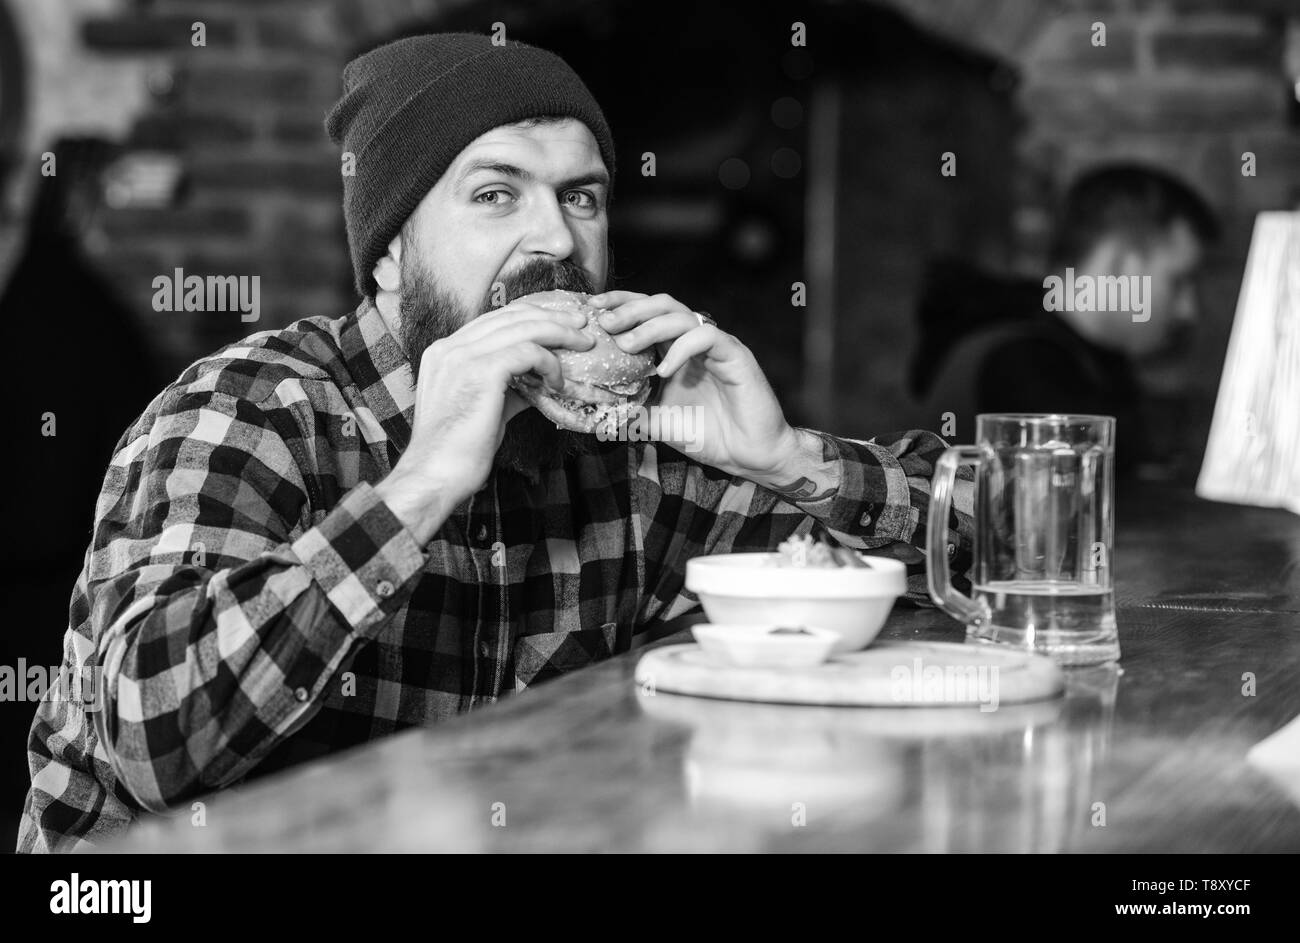 High calorie food. Delicious burger concept. Enjoy taste of fresh burger. Hipster hungry man eat burger. Man with beard eat burger menu. Brutal hipster bearded man sit at bar counter. Cheat meal. - Stock Image